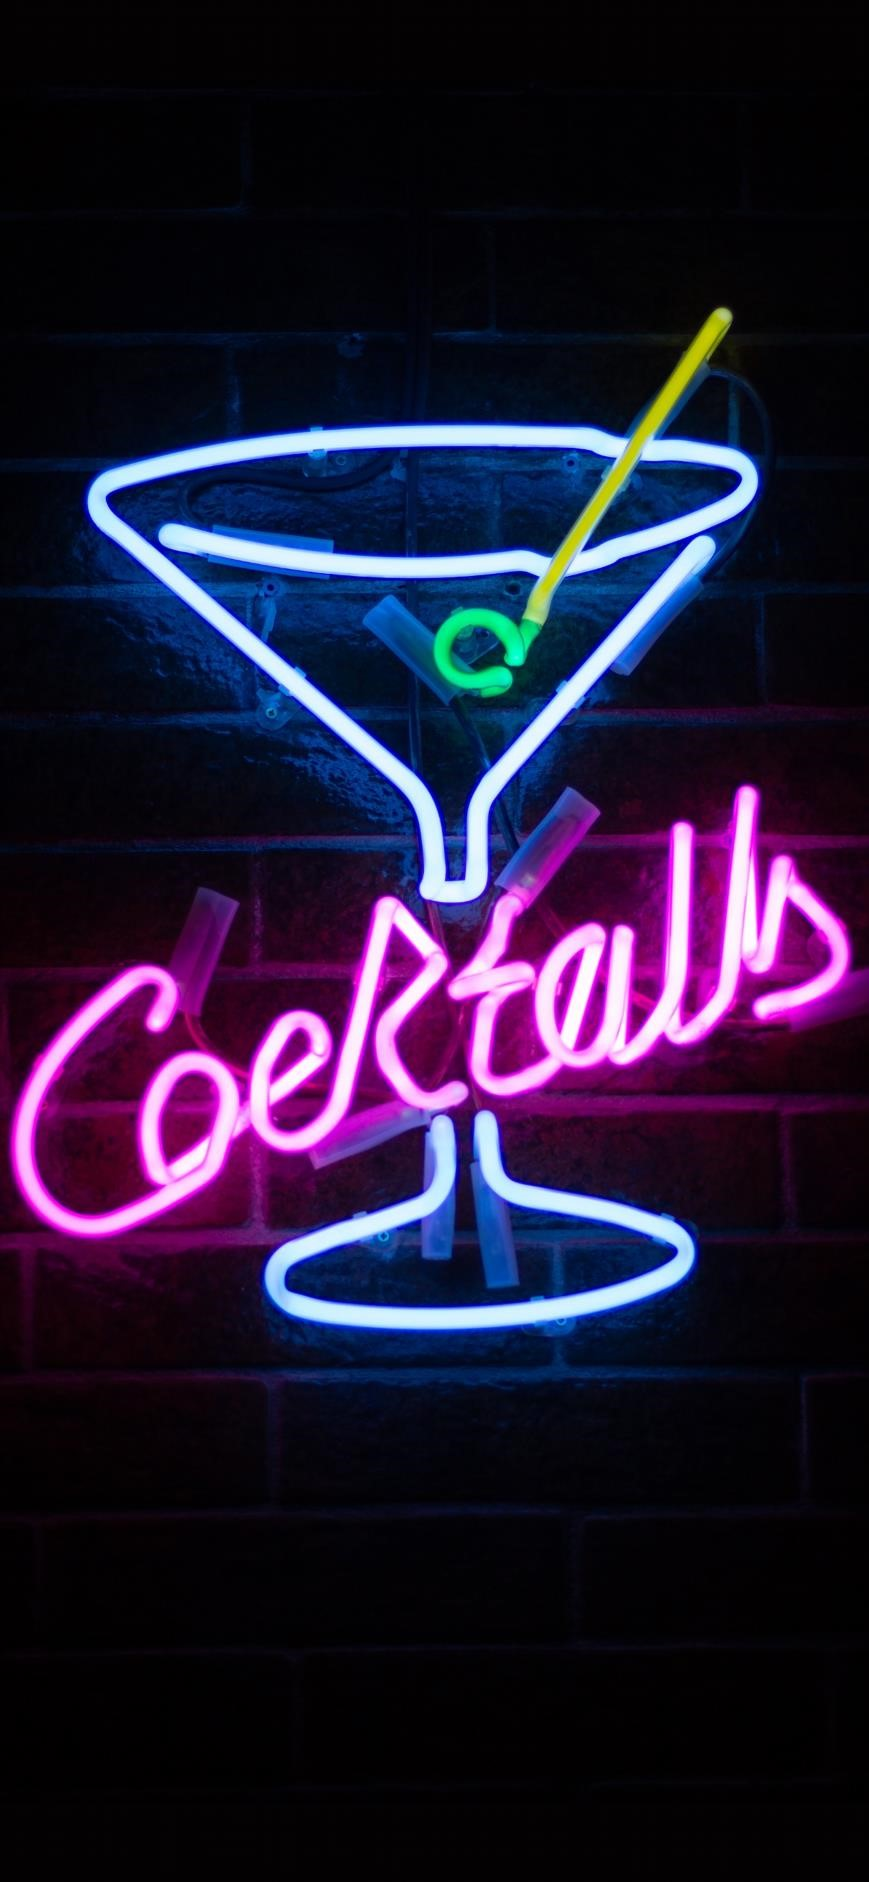 iPhone-wallpapers-neon-sign-cocktails ...